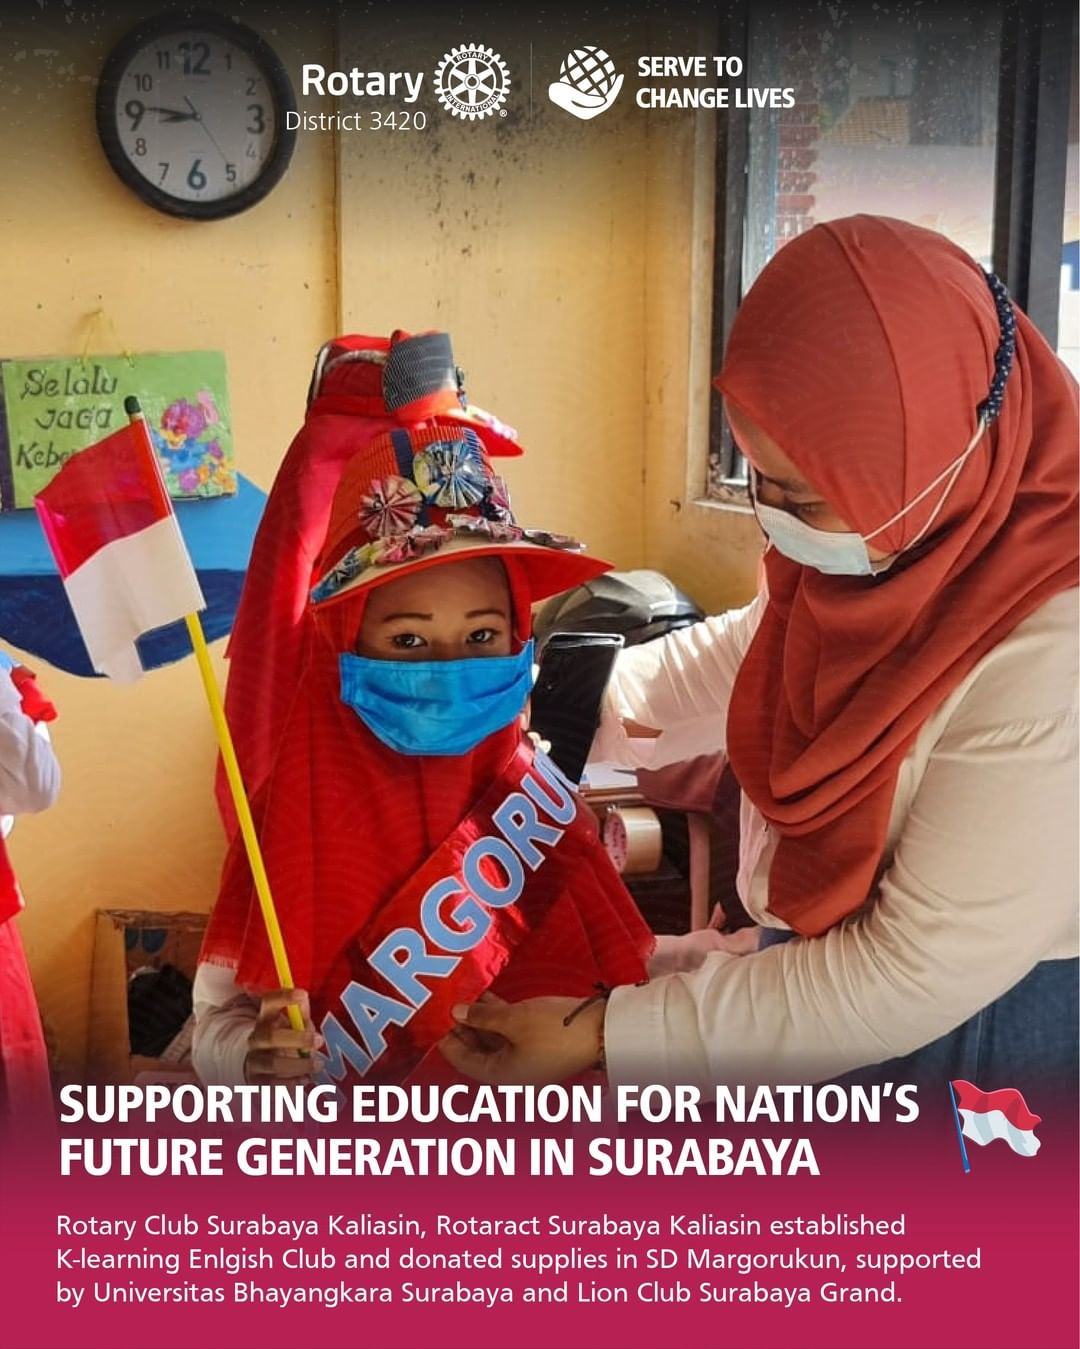 Supporting Education for Nation's Future Generation in Surabaya